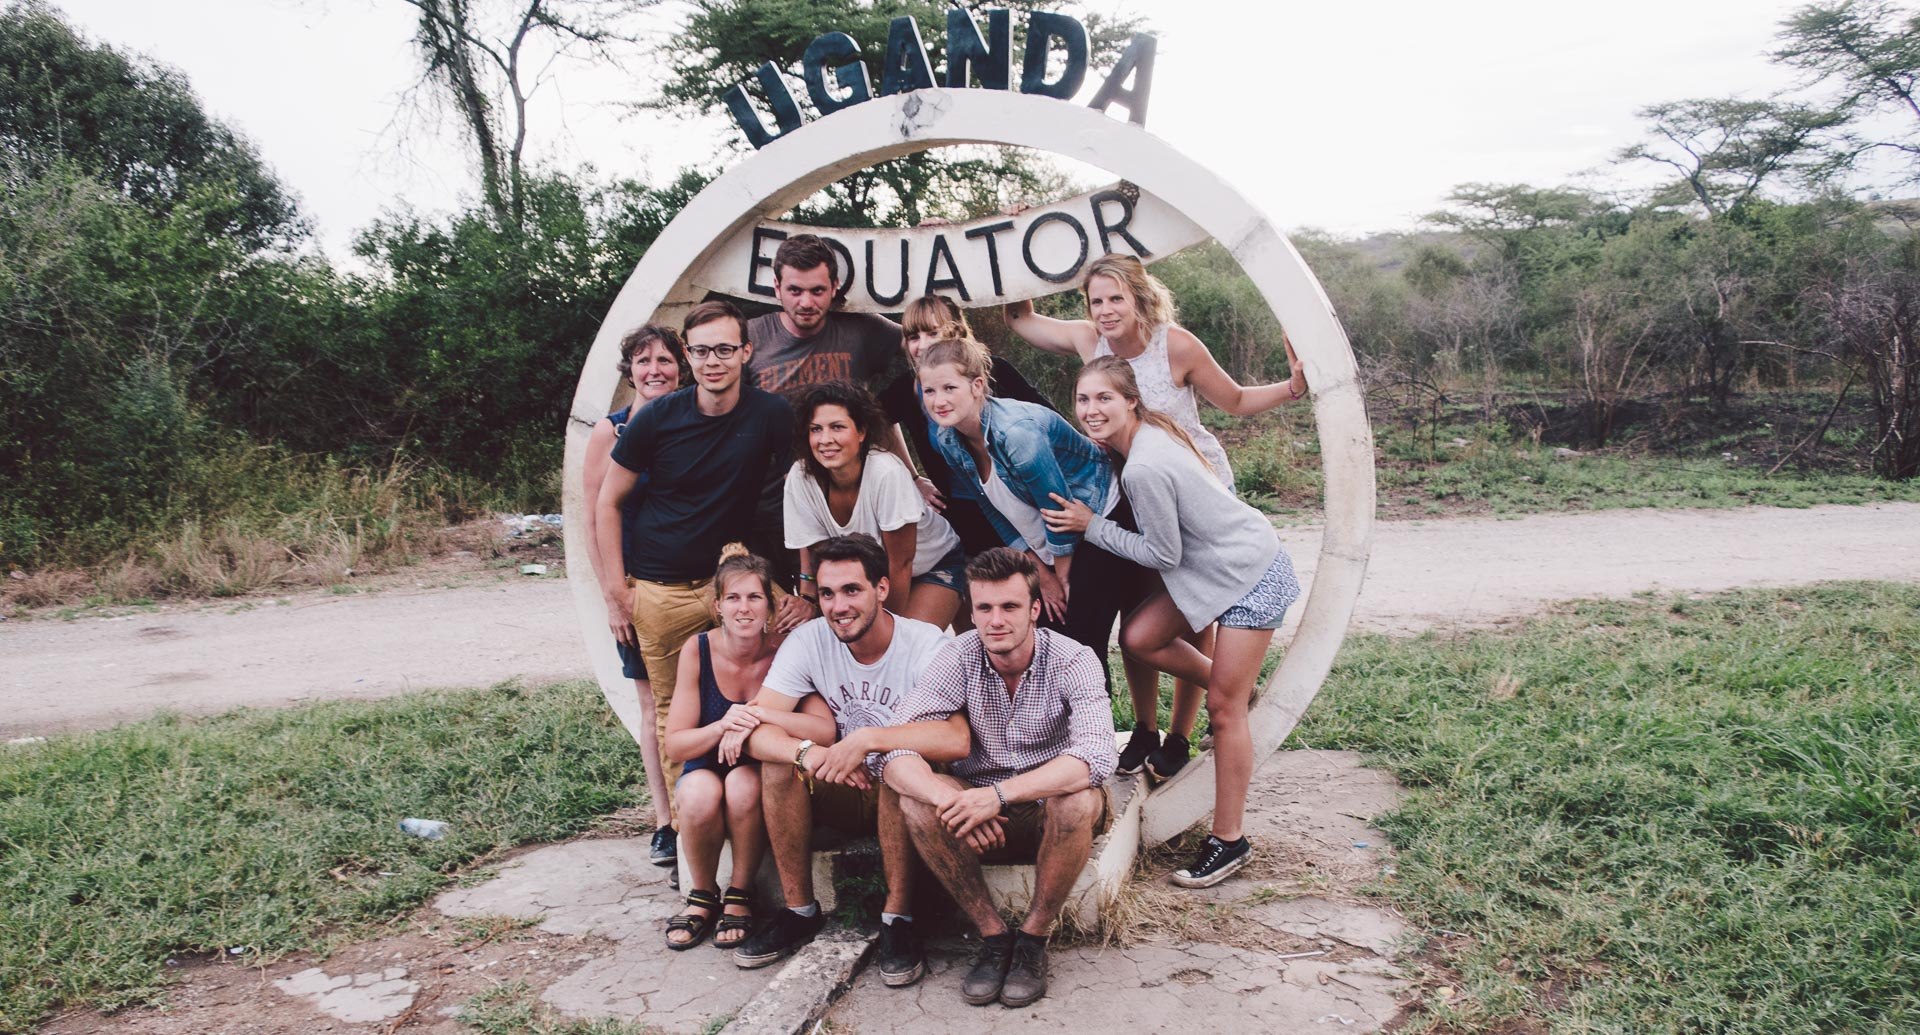 Us at the ugandan equator